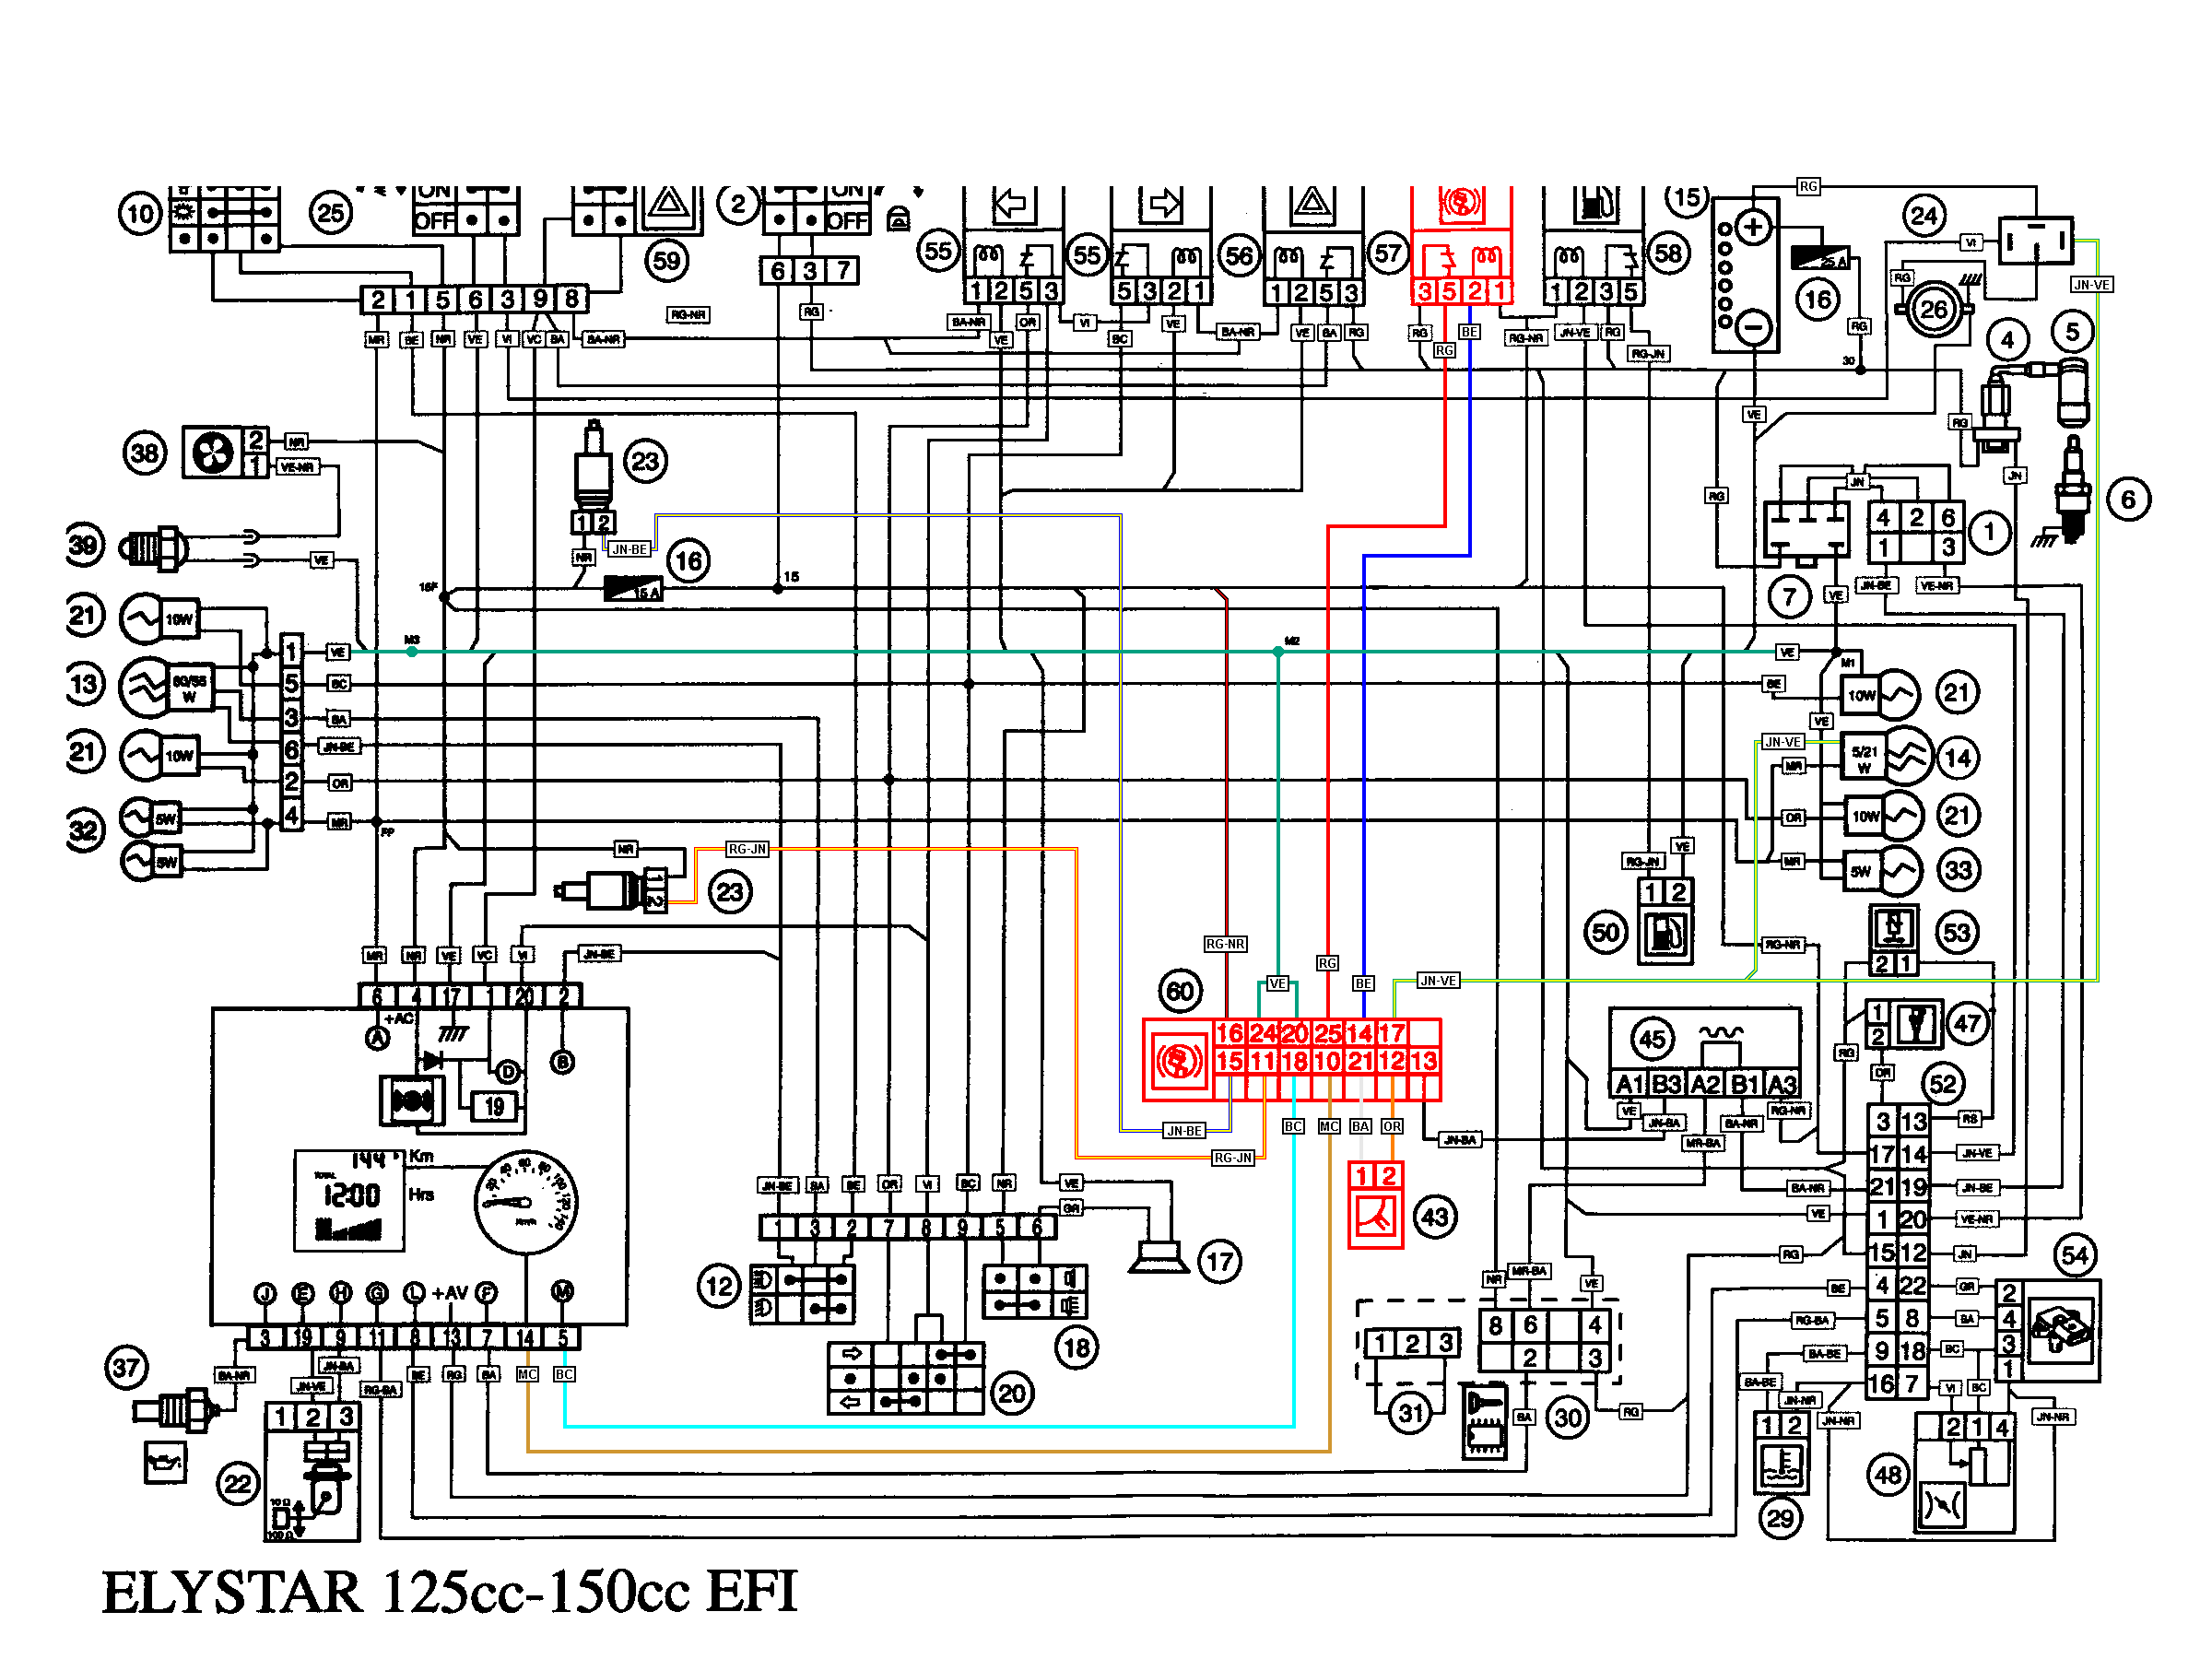 1989 Honda Accord Lx Fuse Box Diagram Circuit Wiring And Hub 2003 Element For A 2004 2006 1994